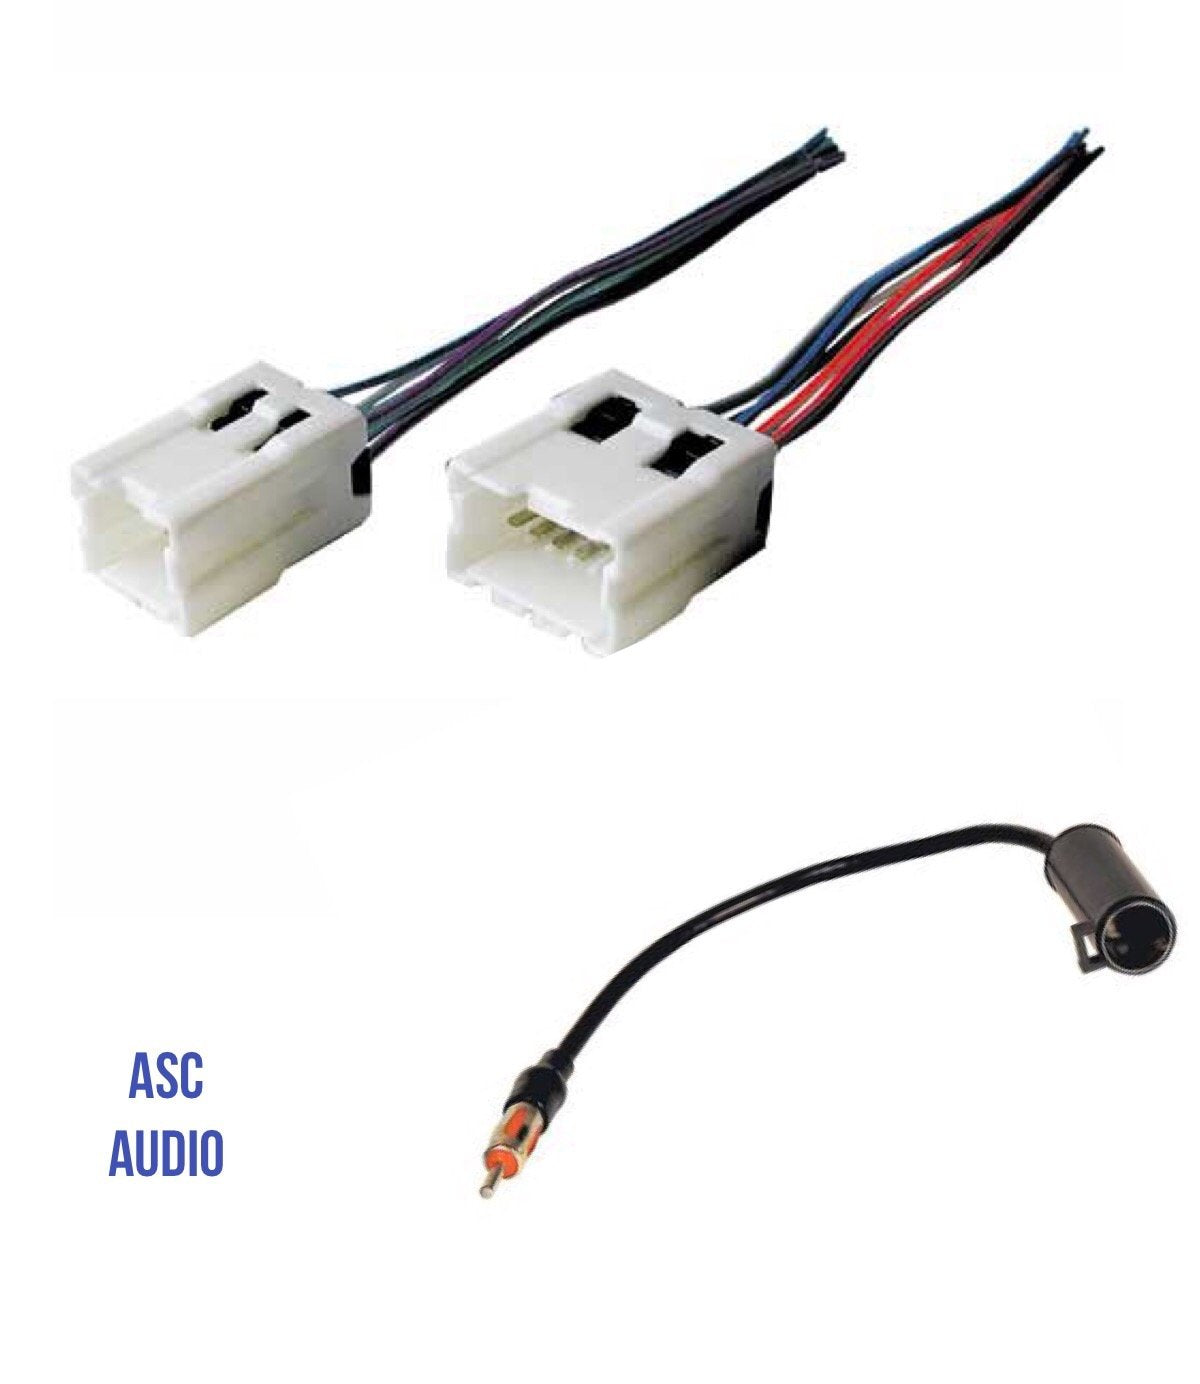 asc audio car stereo radio wire harness and antenna adapter to aftermarket  radio for some infinit